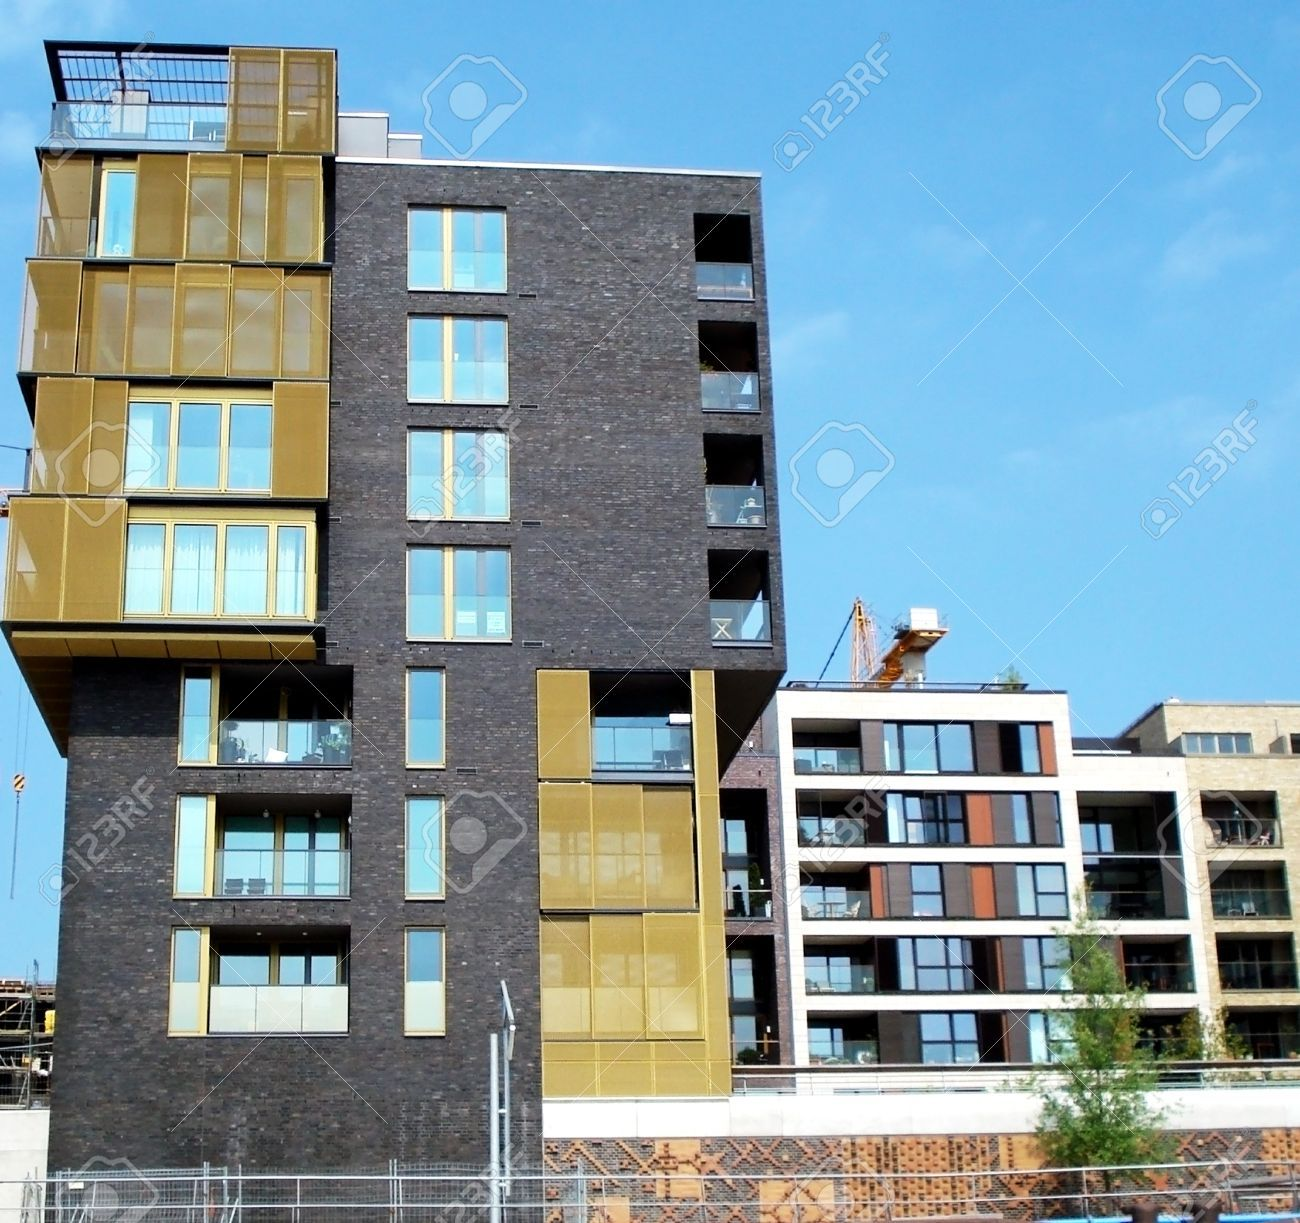 Image Result For Apartment Buildings Germany (With Images